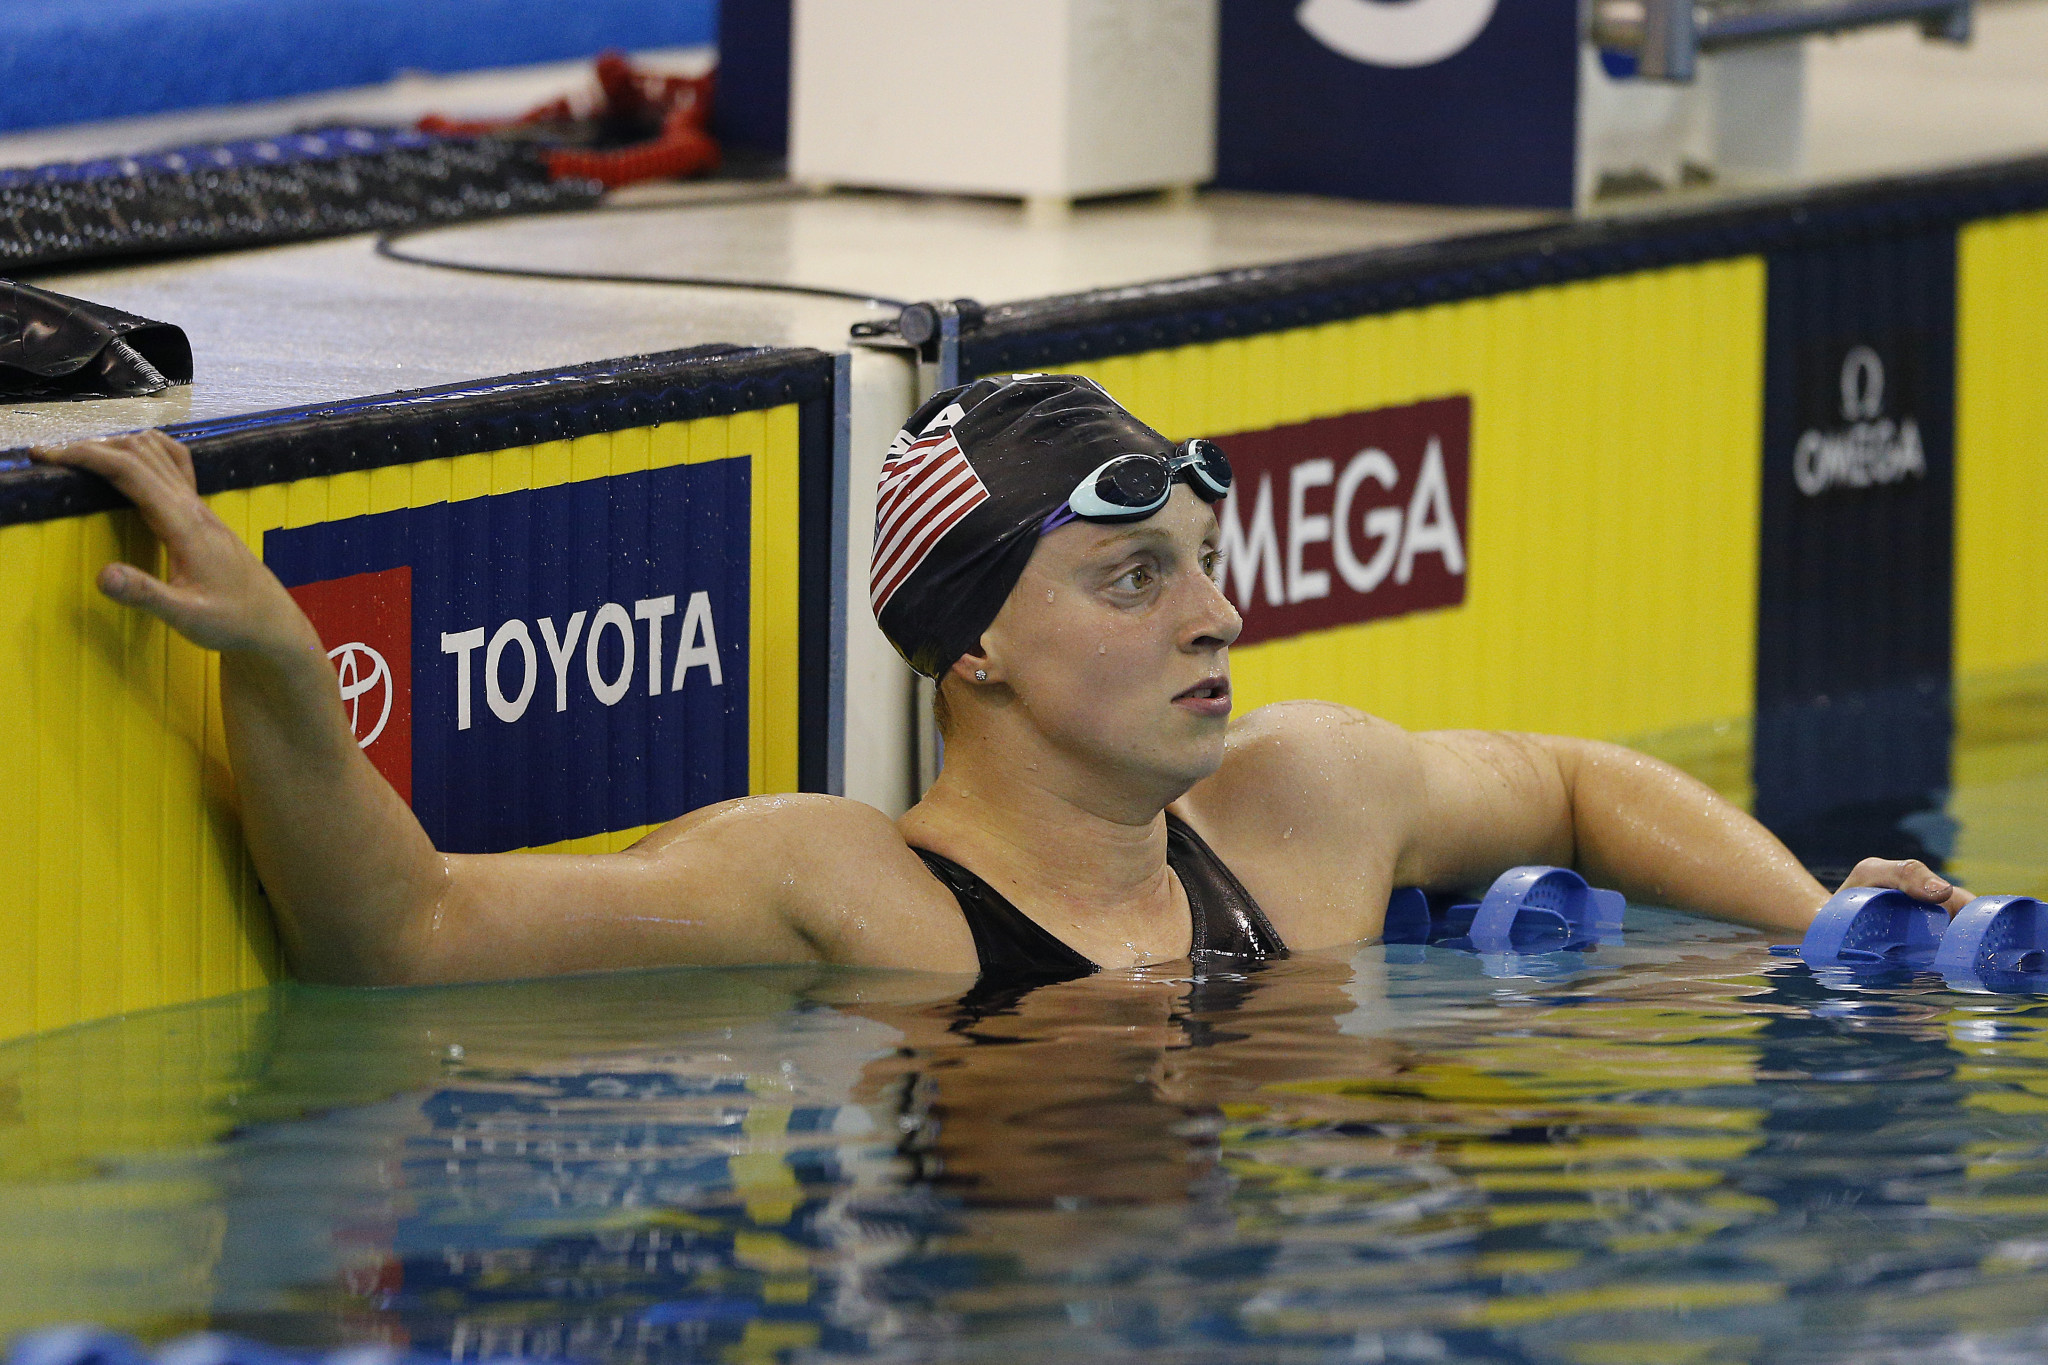 Swimming finals will be among the key events broadcast in prime time in the United States ©Getty Images